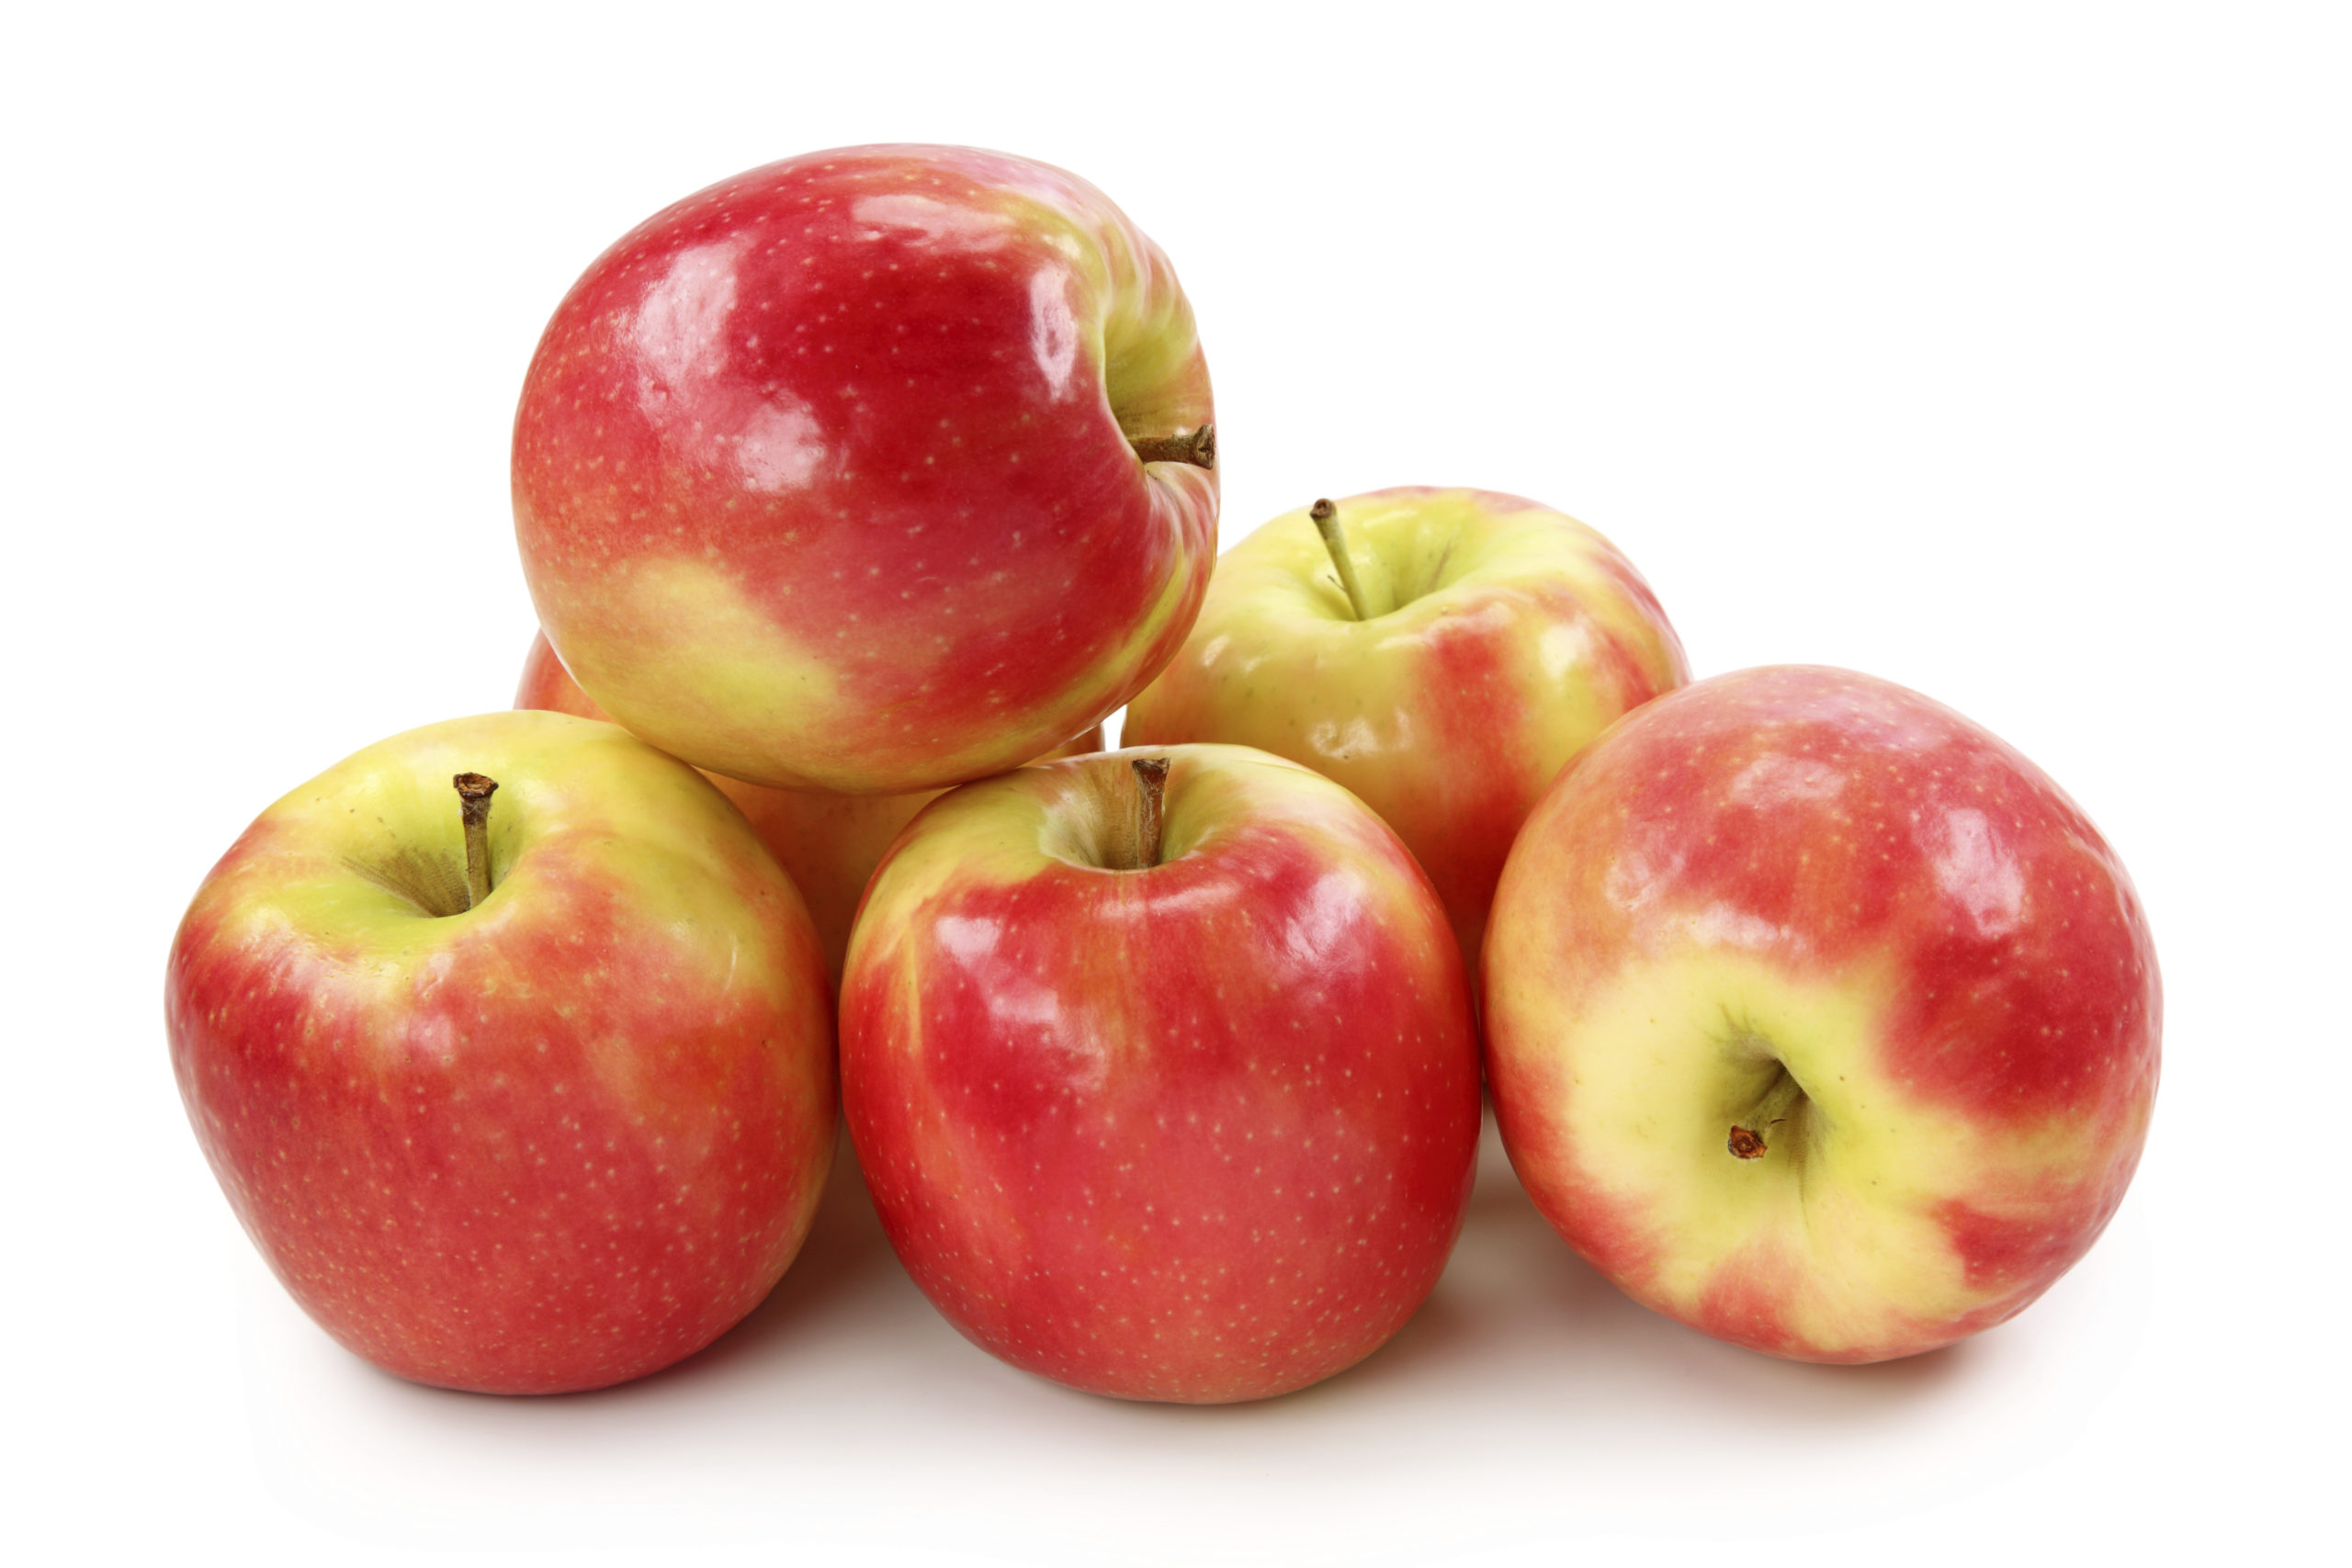 Organic Pink Lady Apples $1.99/lb